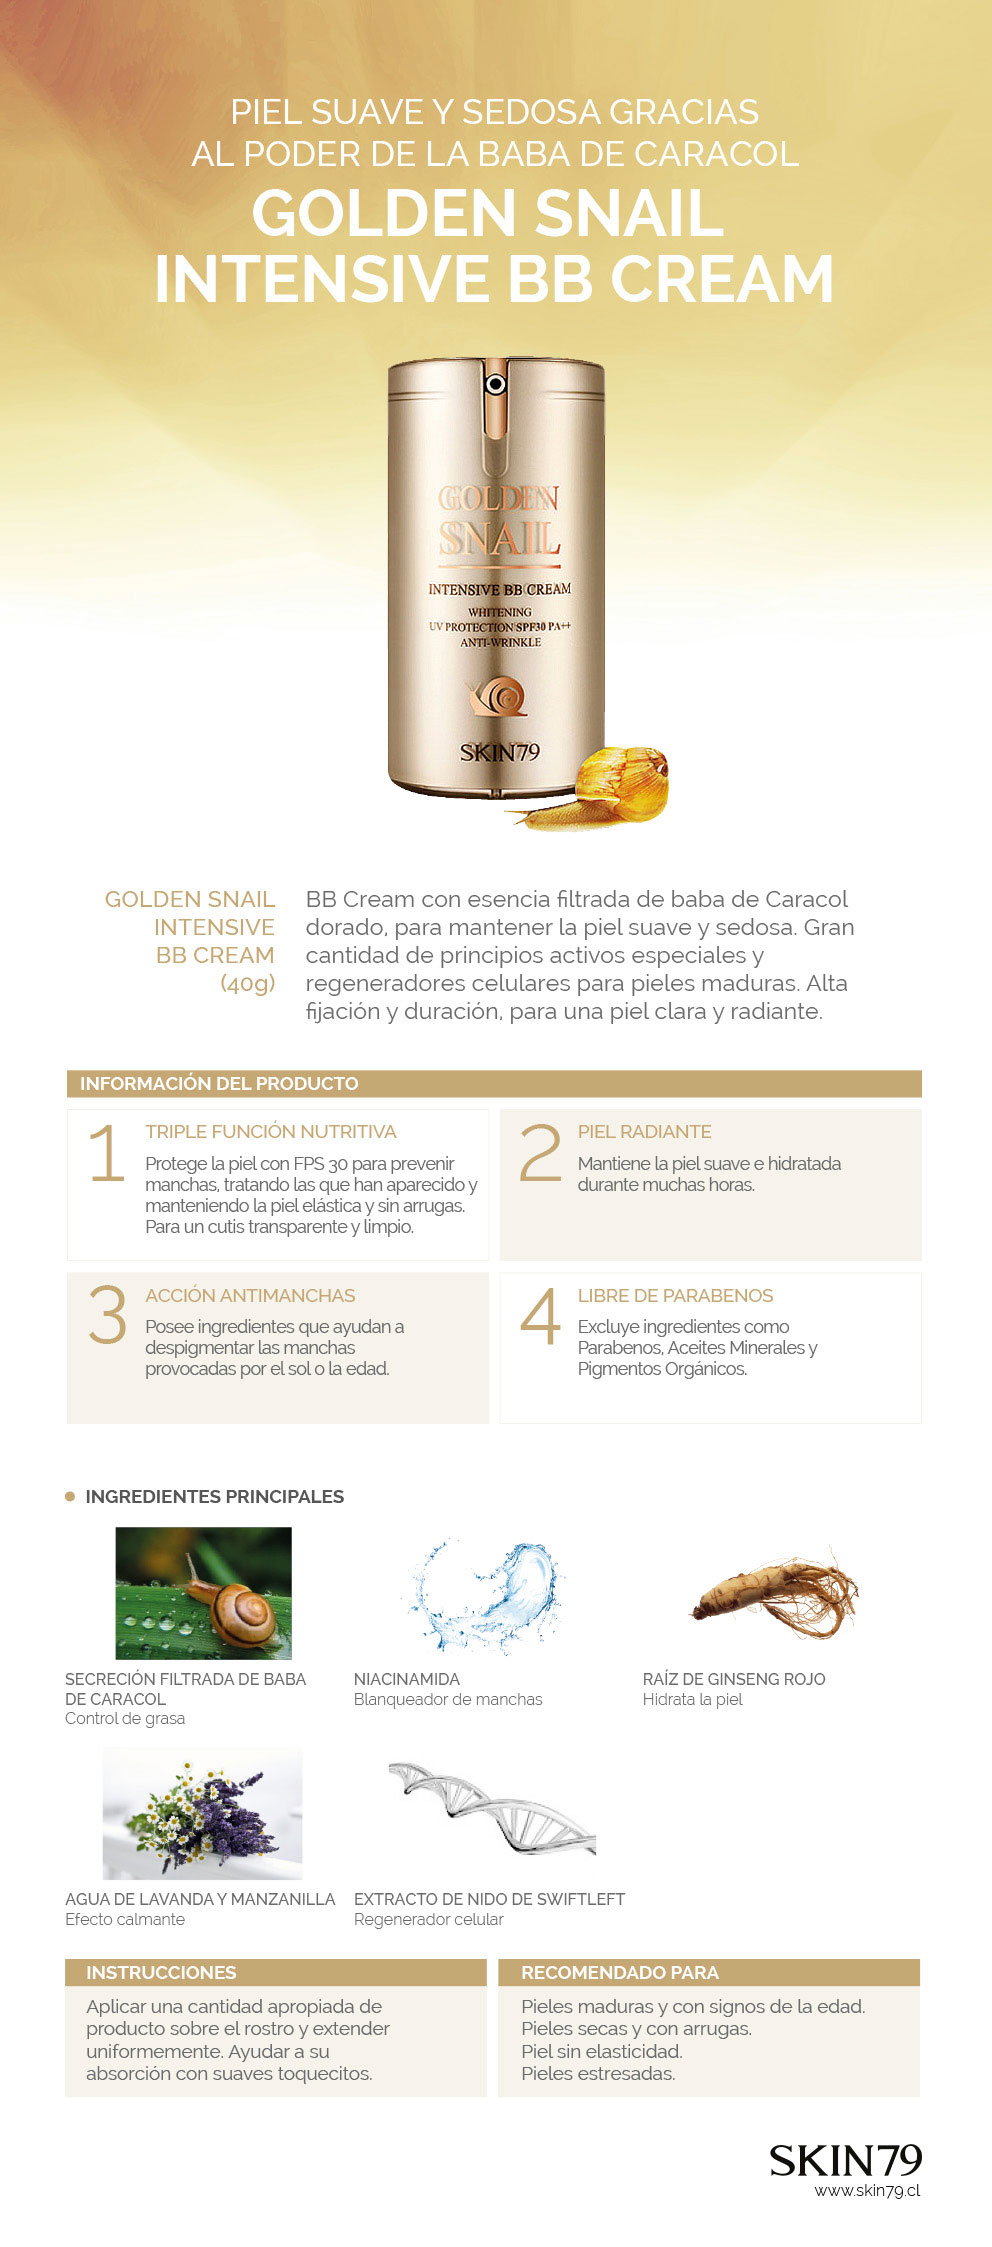 GOLDEN SNAIL INTENSIVE BB CREAM - Skin79